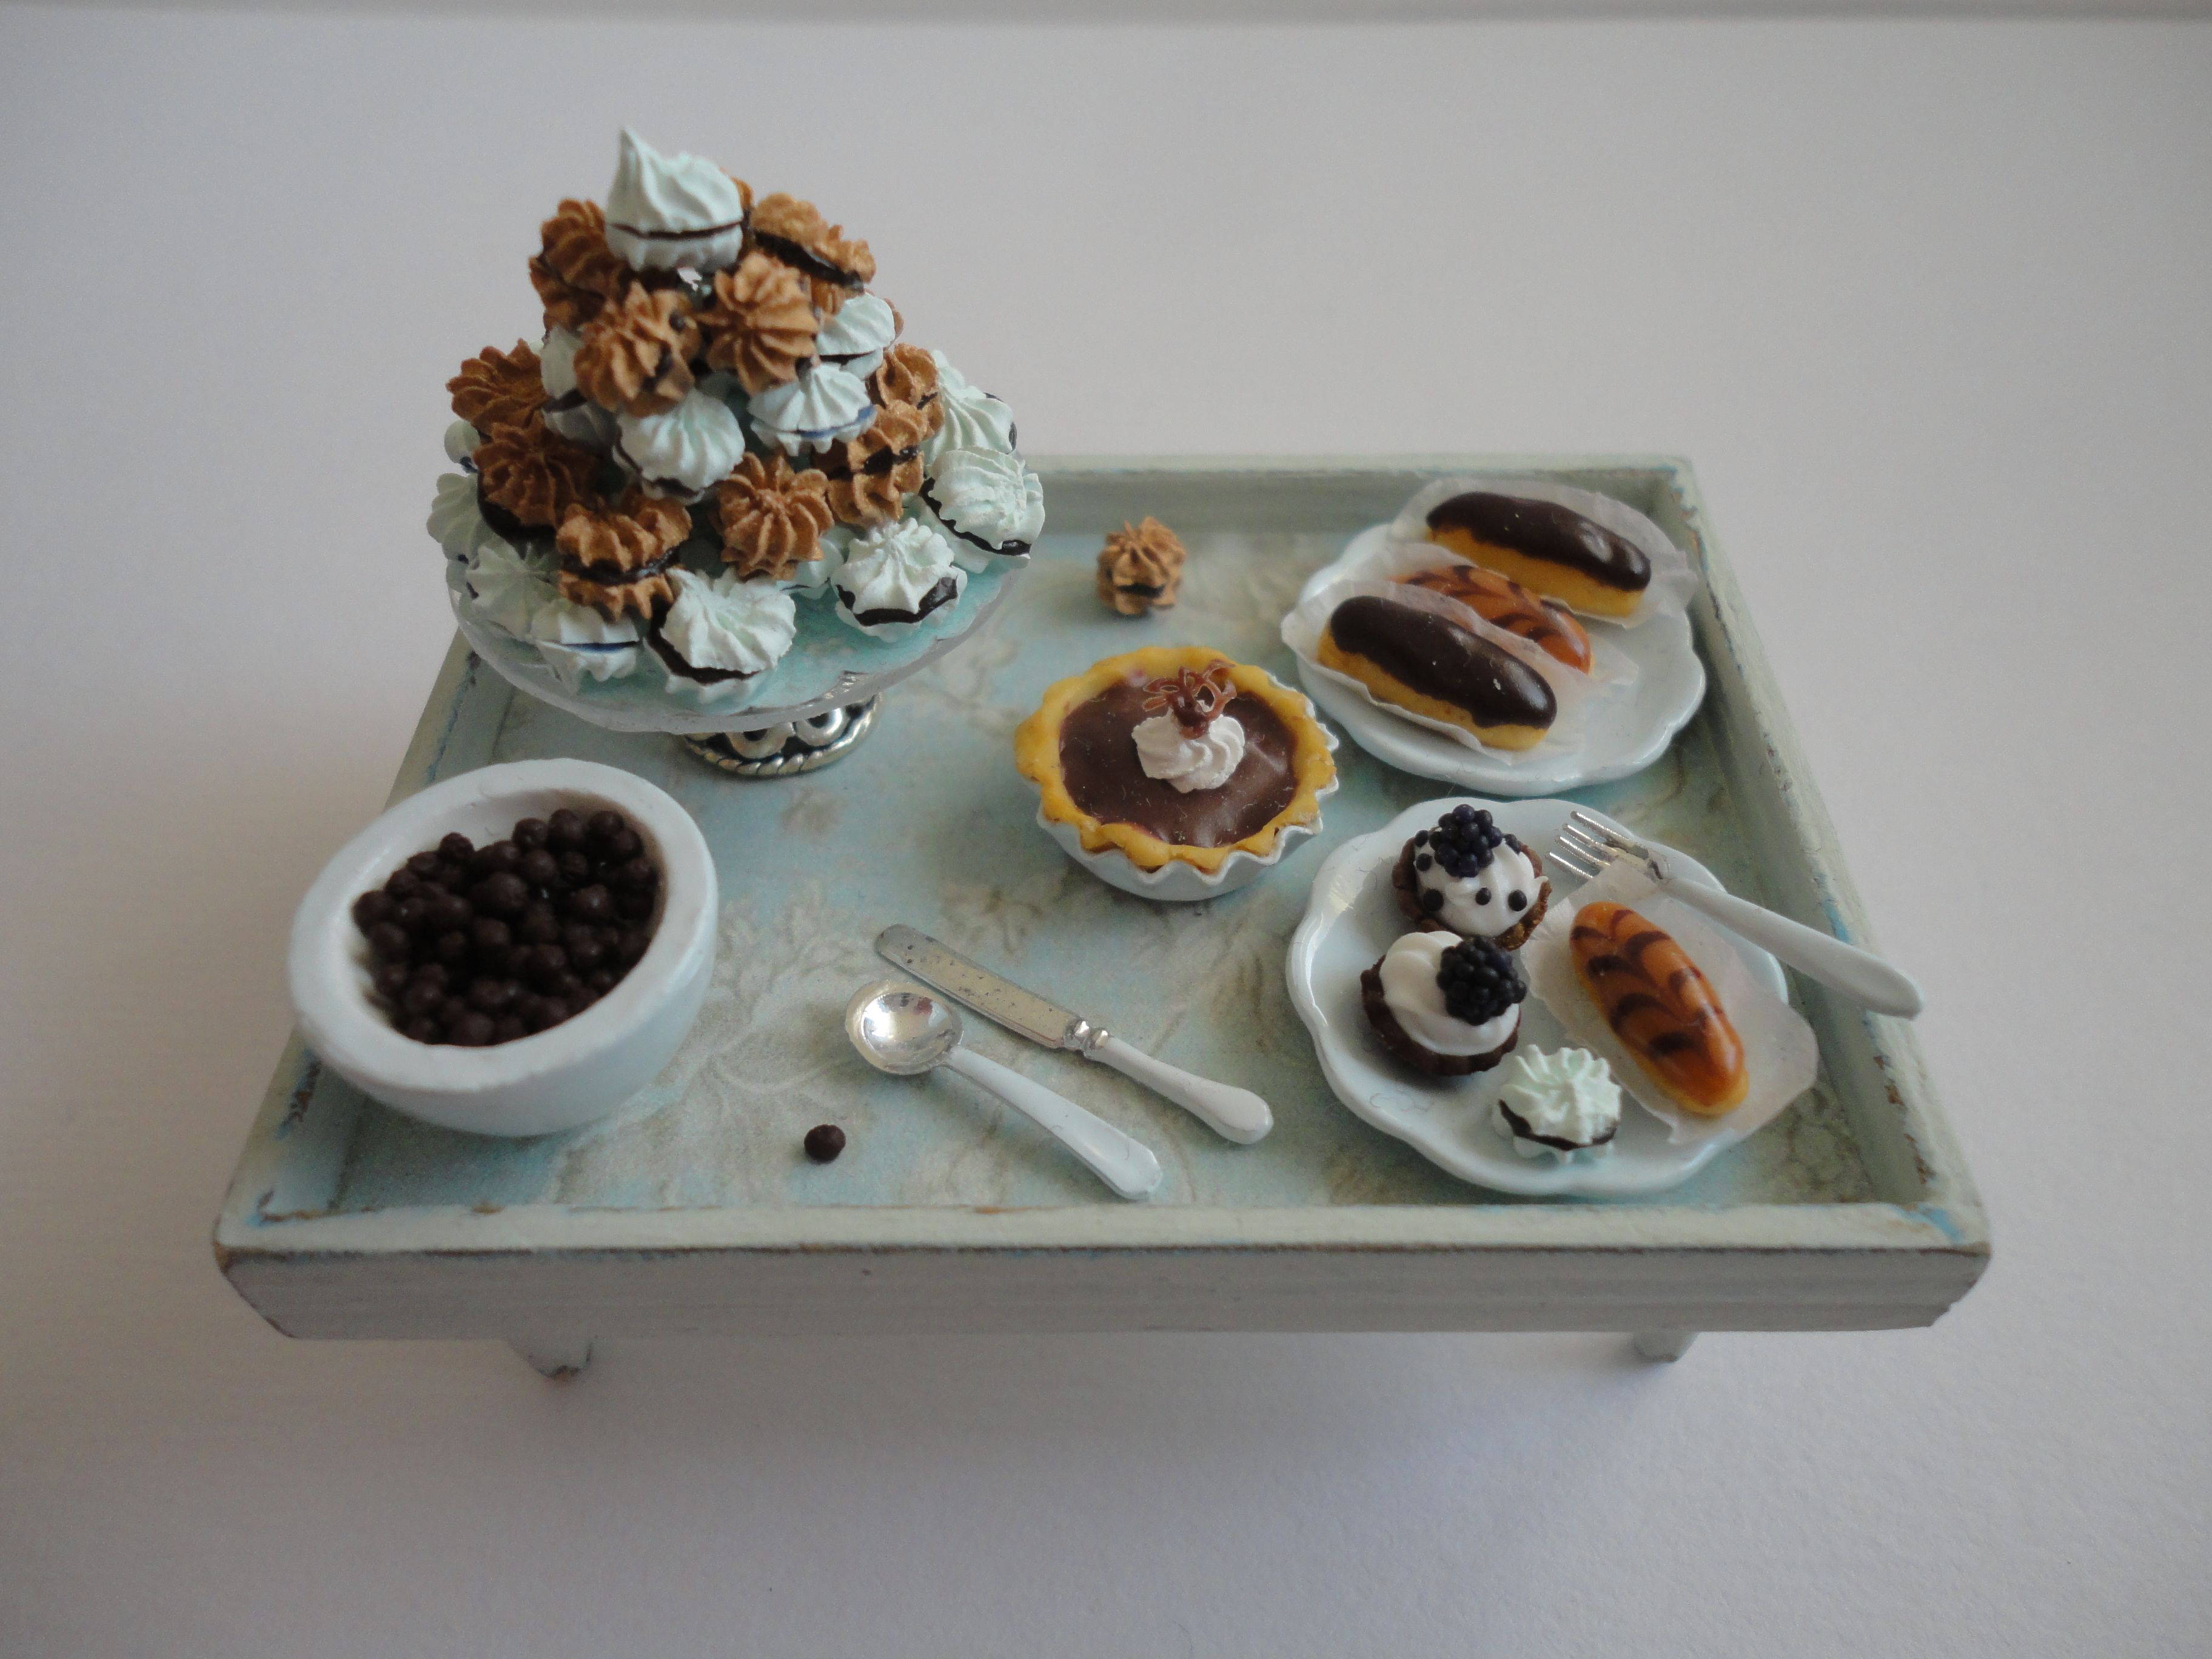 Blue tray with pastries - Orsi's Miniatures